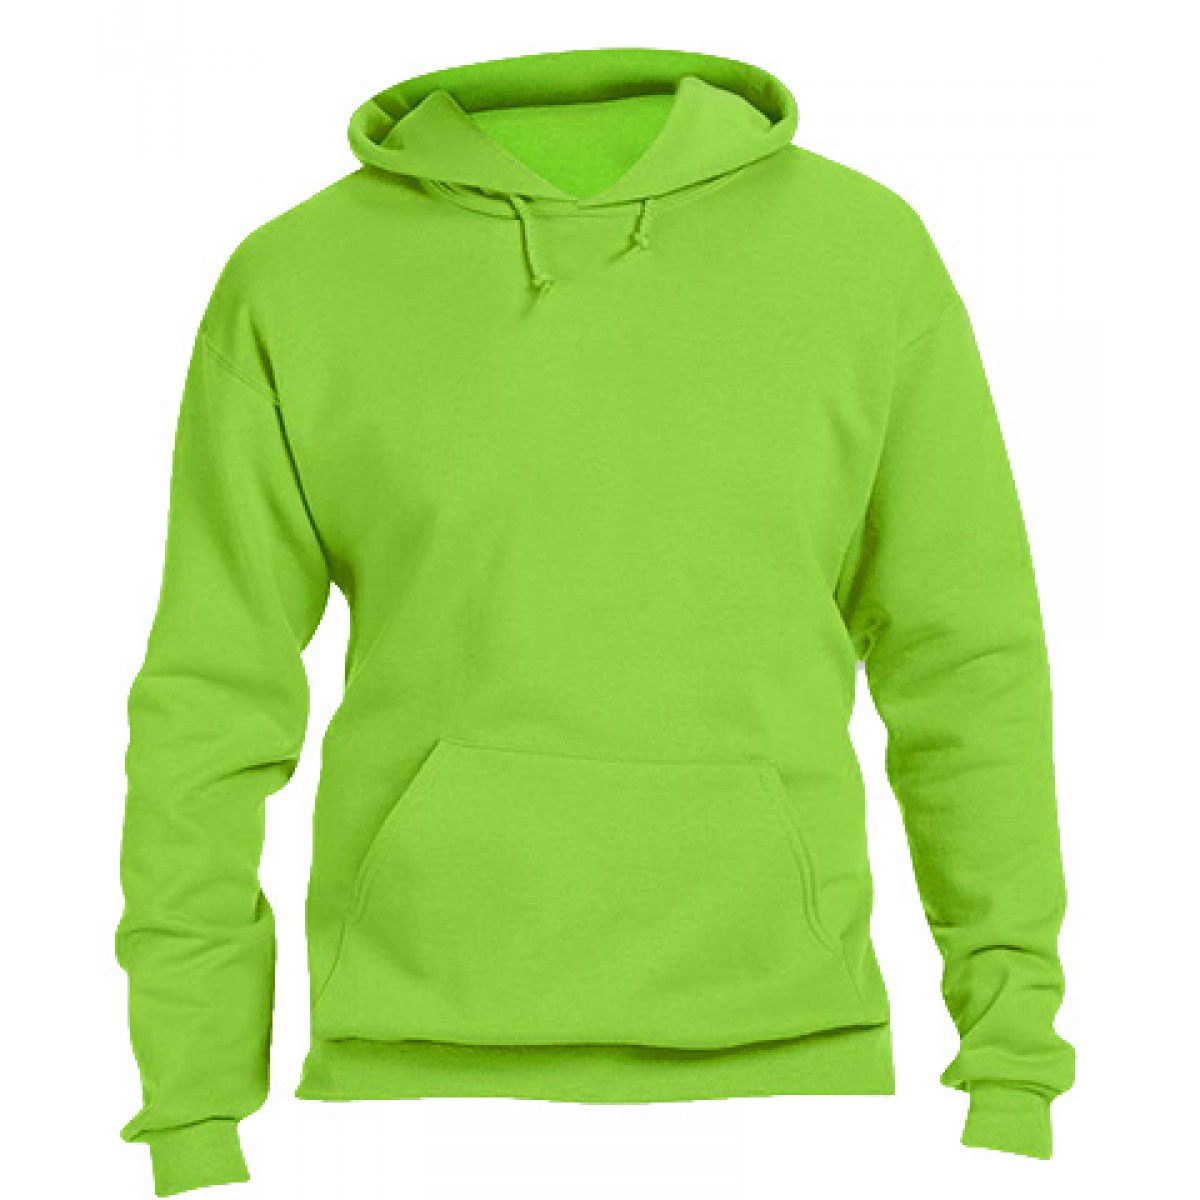 Hooded Sweatshirt 50/50 Heavy Blend -Neon Green-2XL